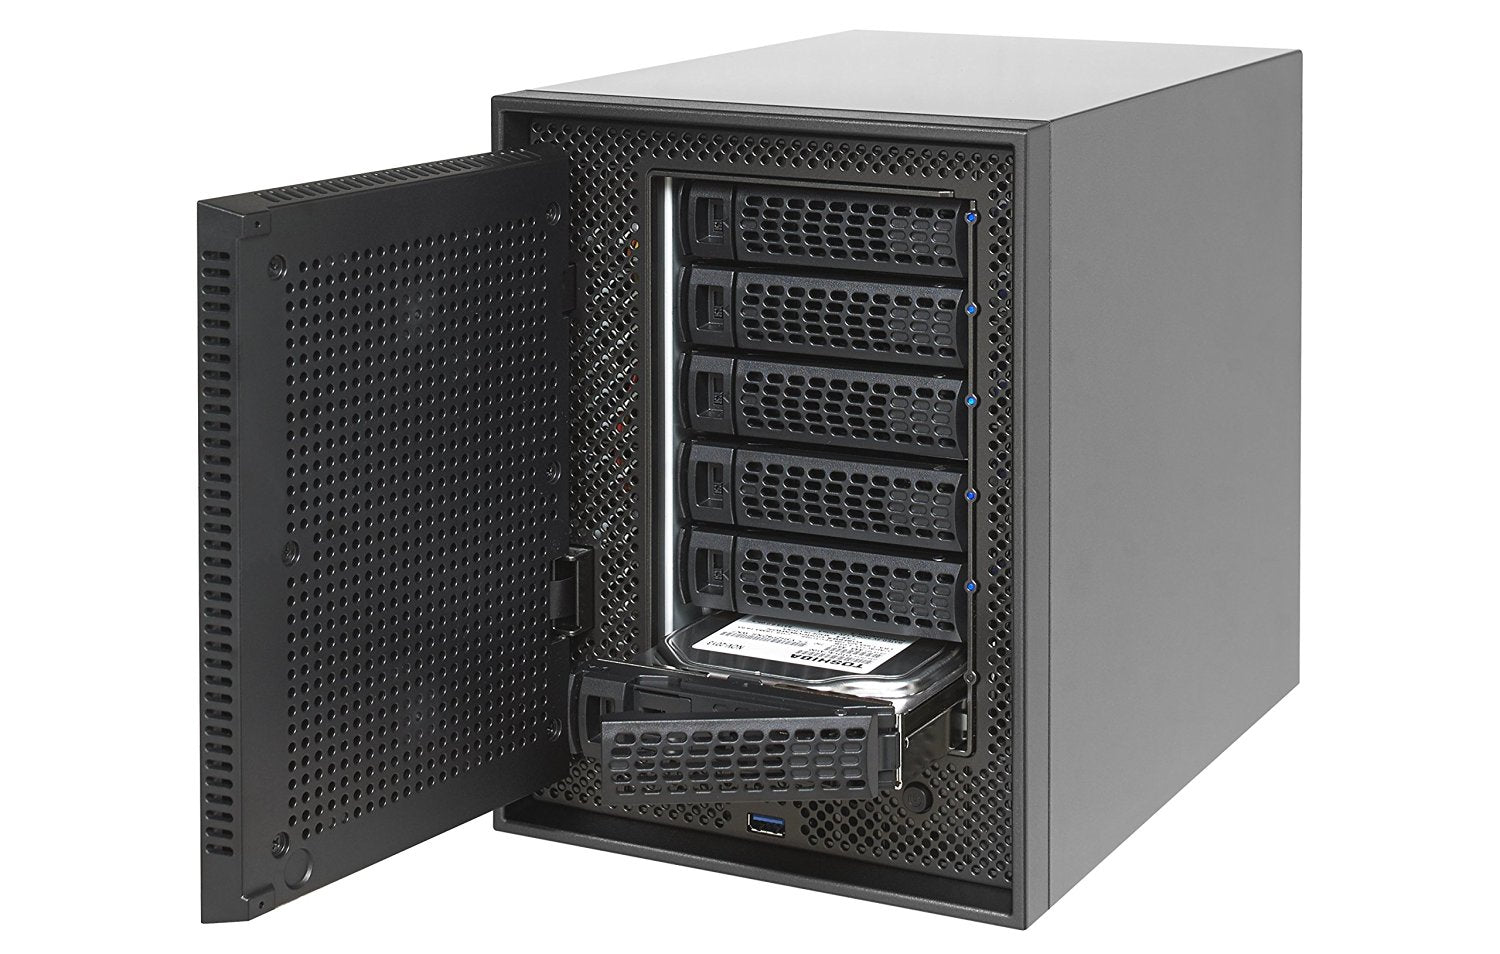 Ready Nas 526 X   Desktop Network Storage 10 G Base T, 6 Bay Diskless